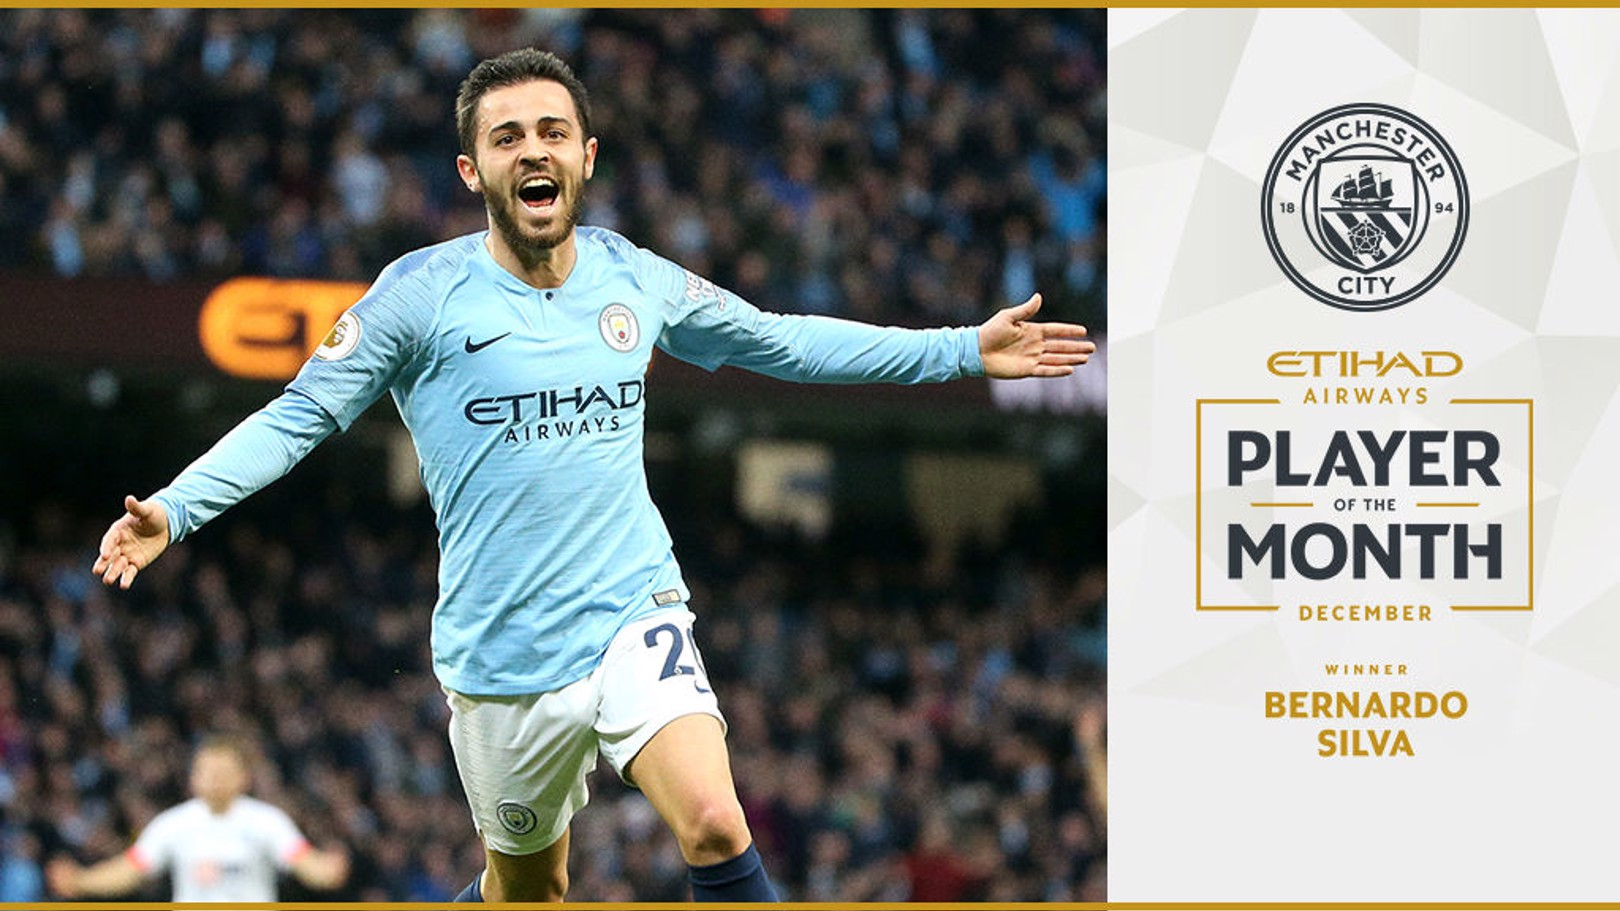 Bernardo voted Etihad Player of the Month